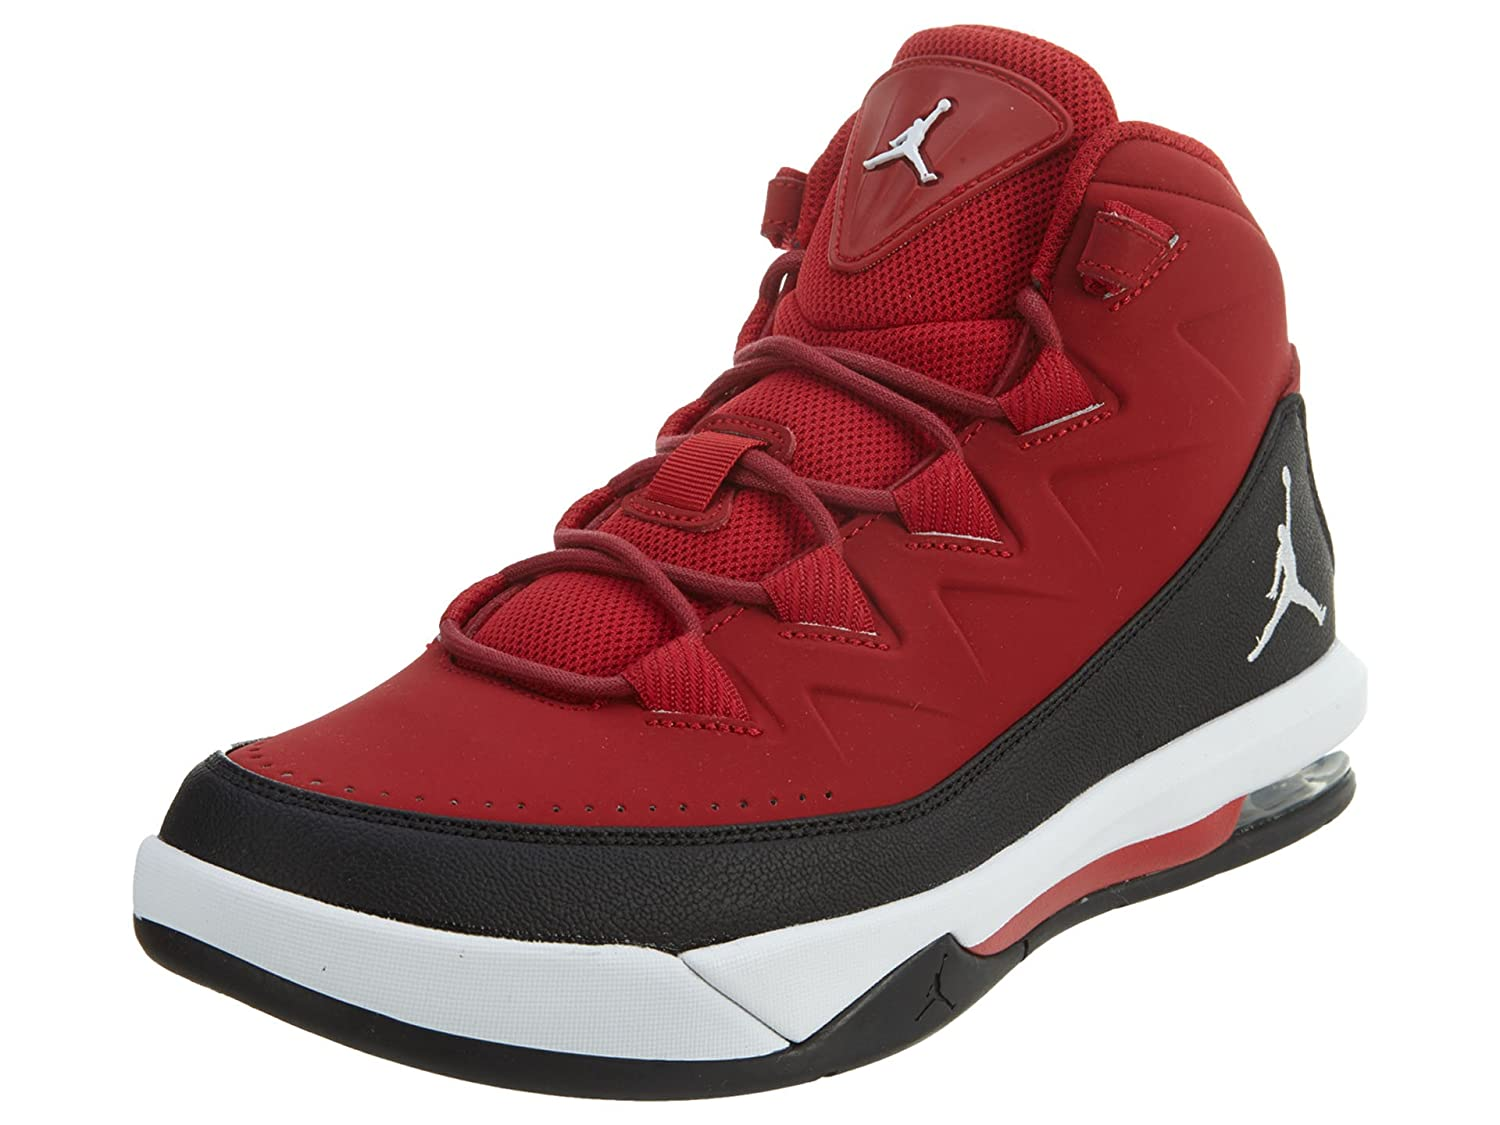 jordan air deluxe basketball